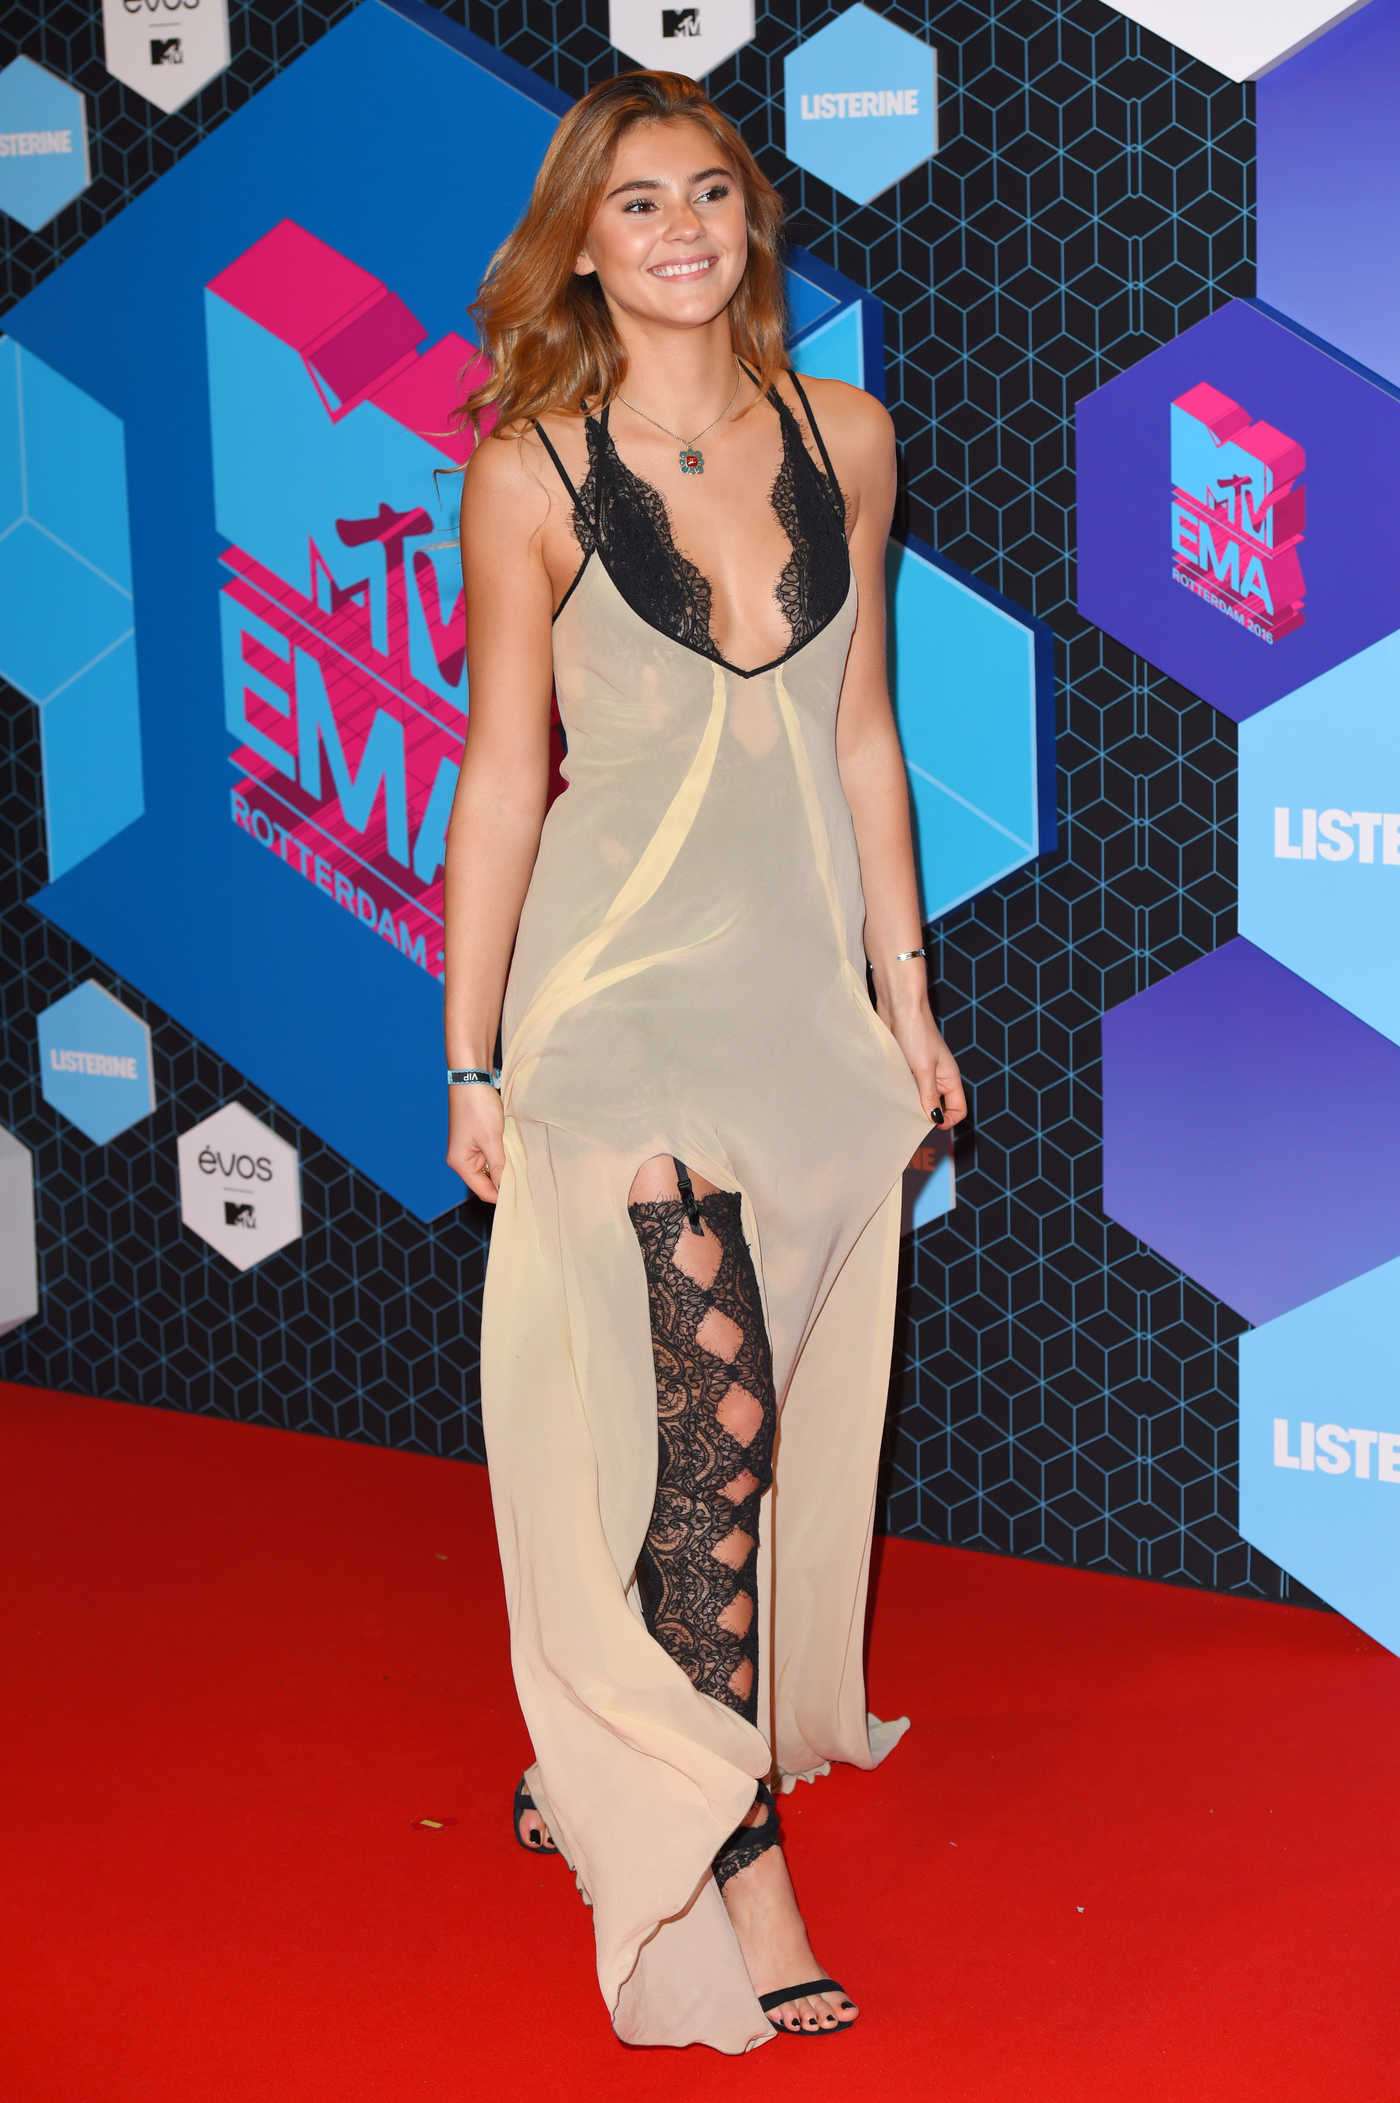 Stefanie Giesinger at the MTV Europe Music Awards in Rotterdam 11/06/2016